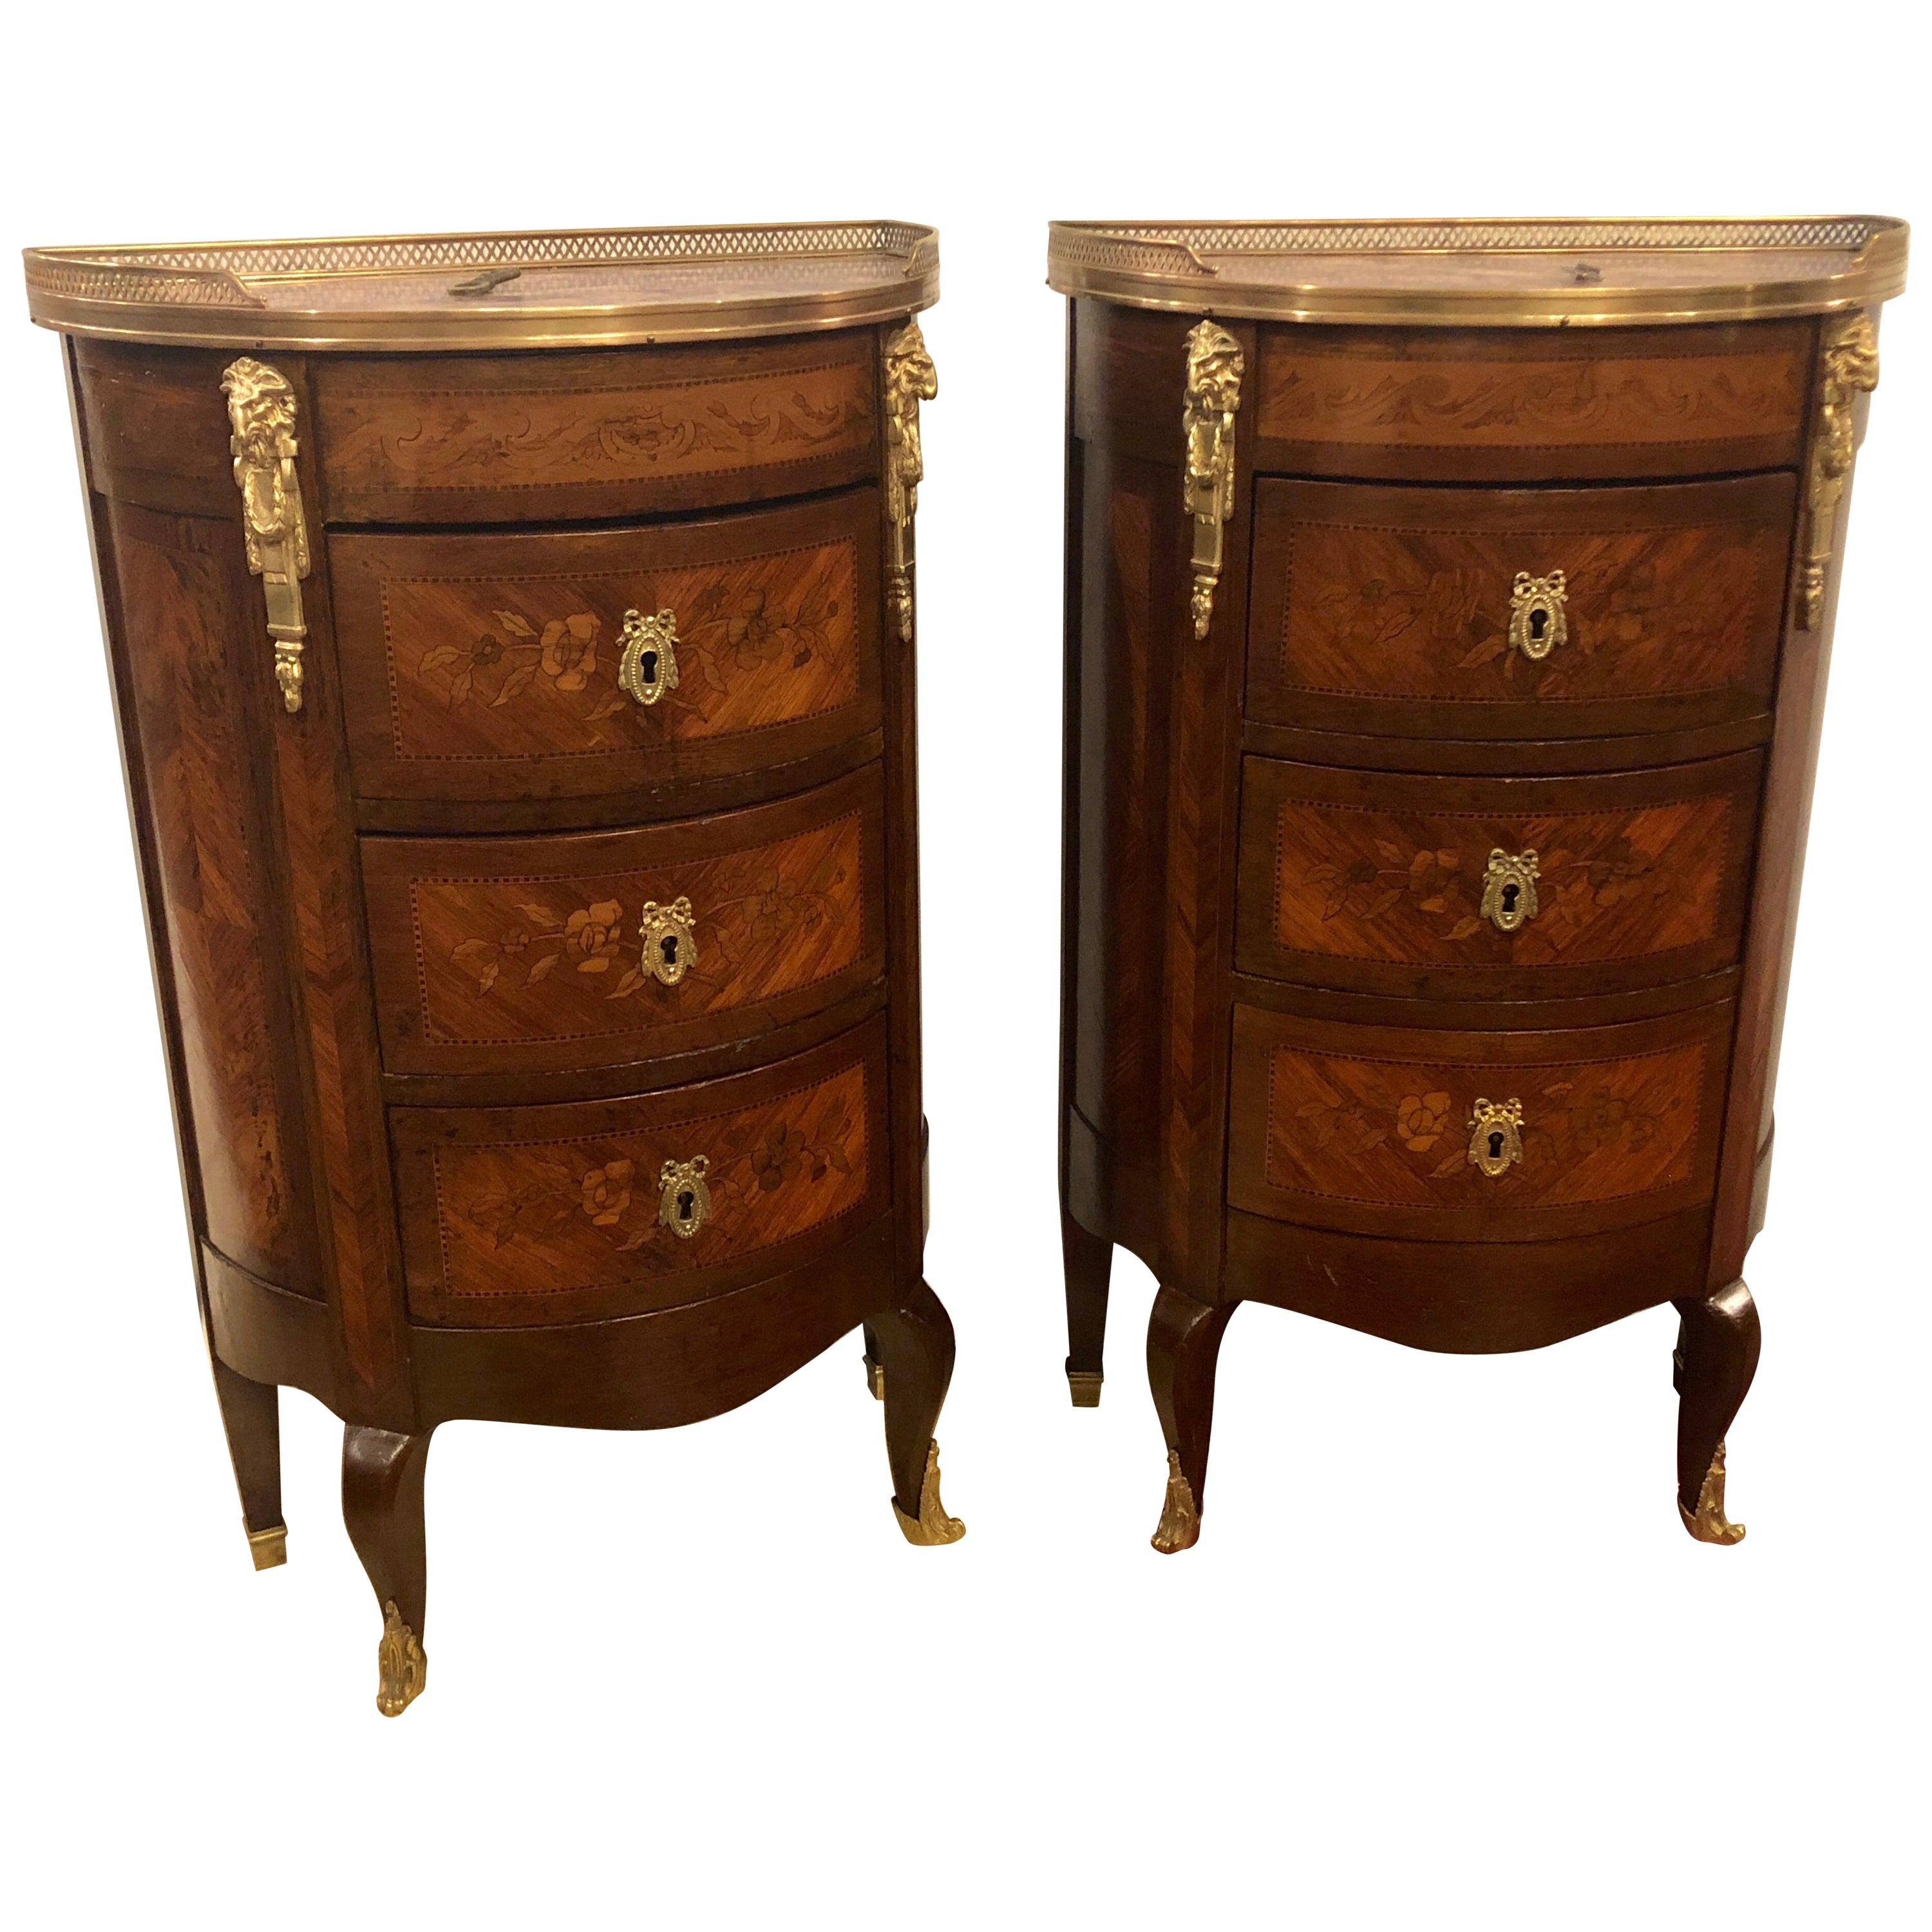 Pair of 19th Century Bronze Mounted Demilune End Tables or Nightstands